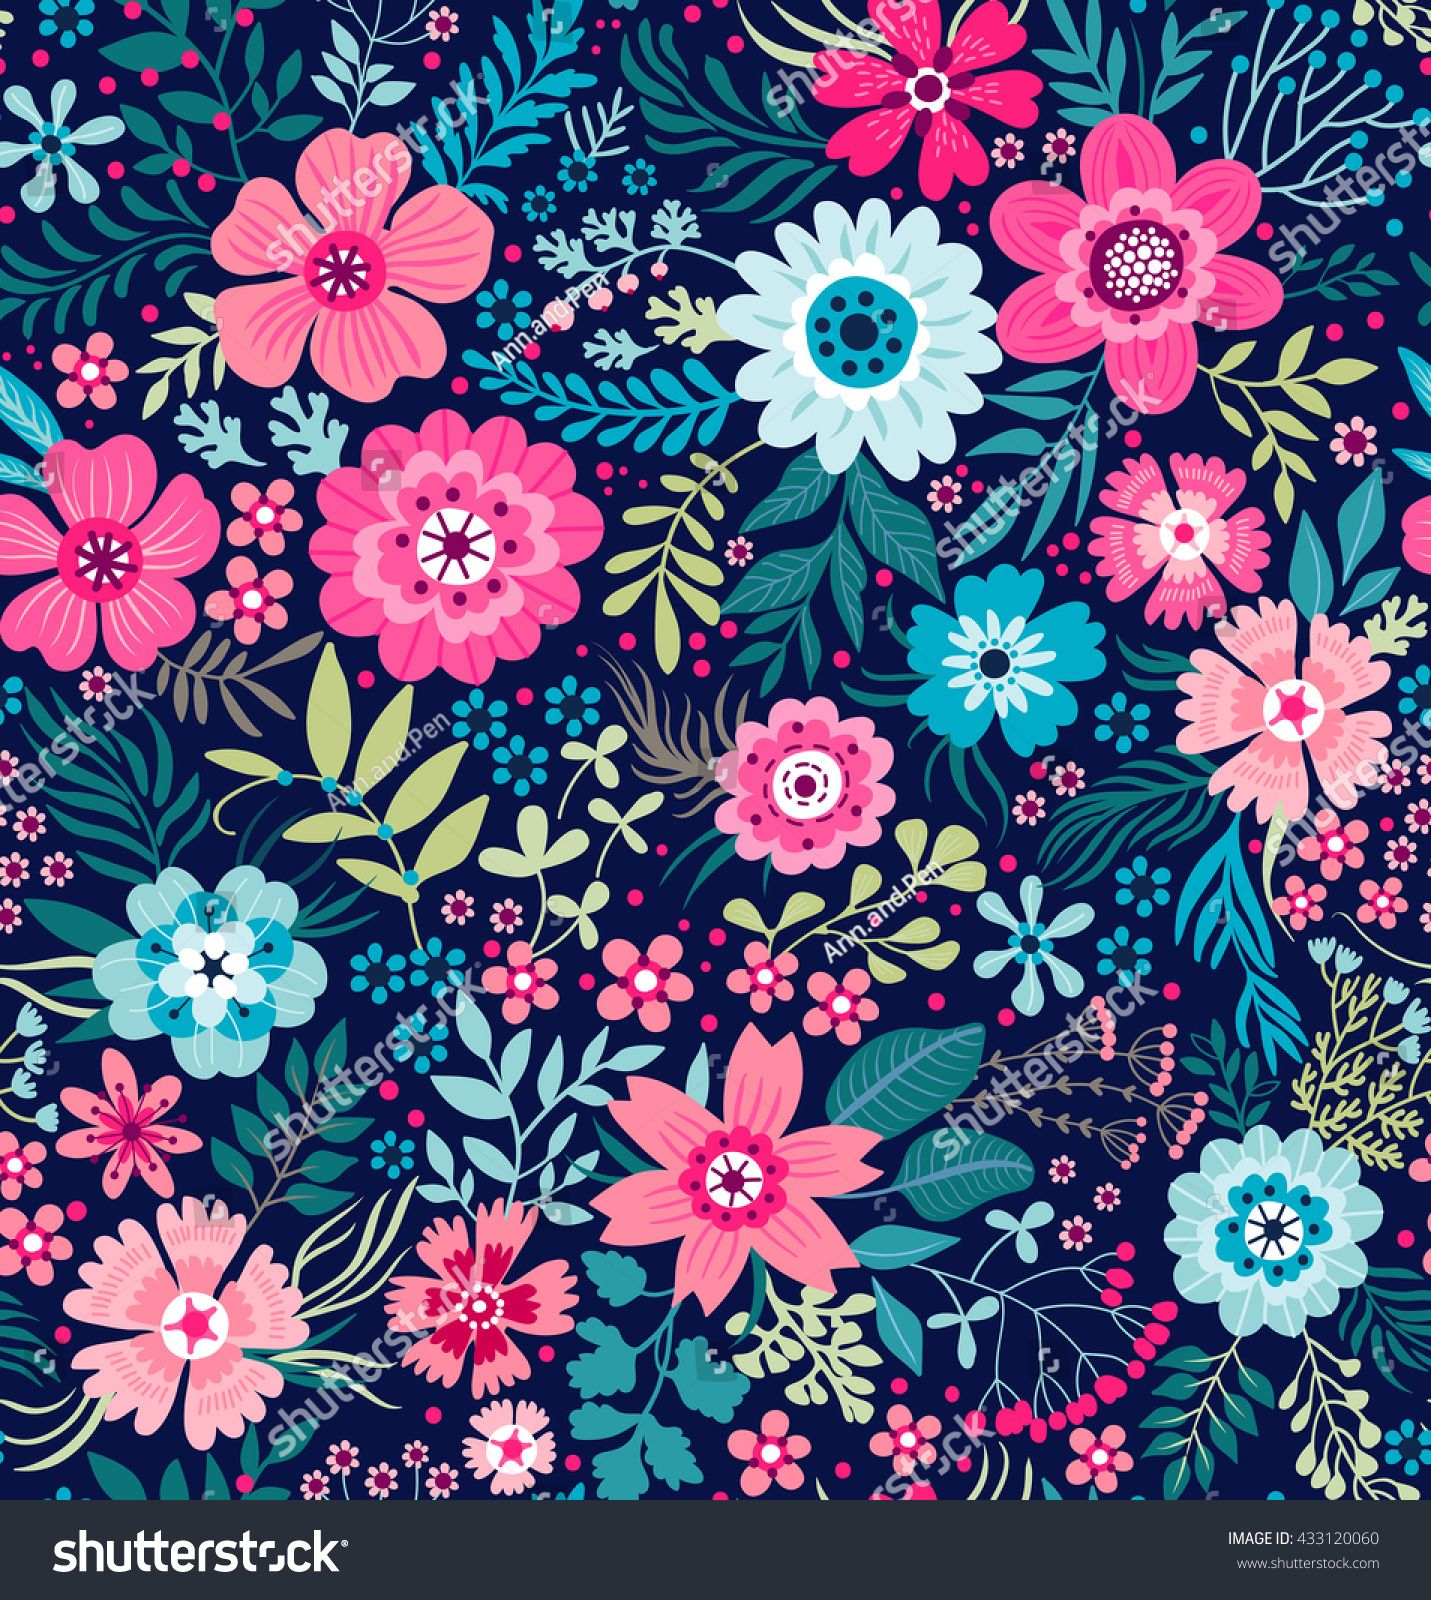 Cute Pattern In Small Flower Small Colorful Flowers White